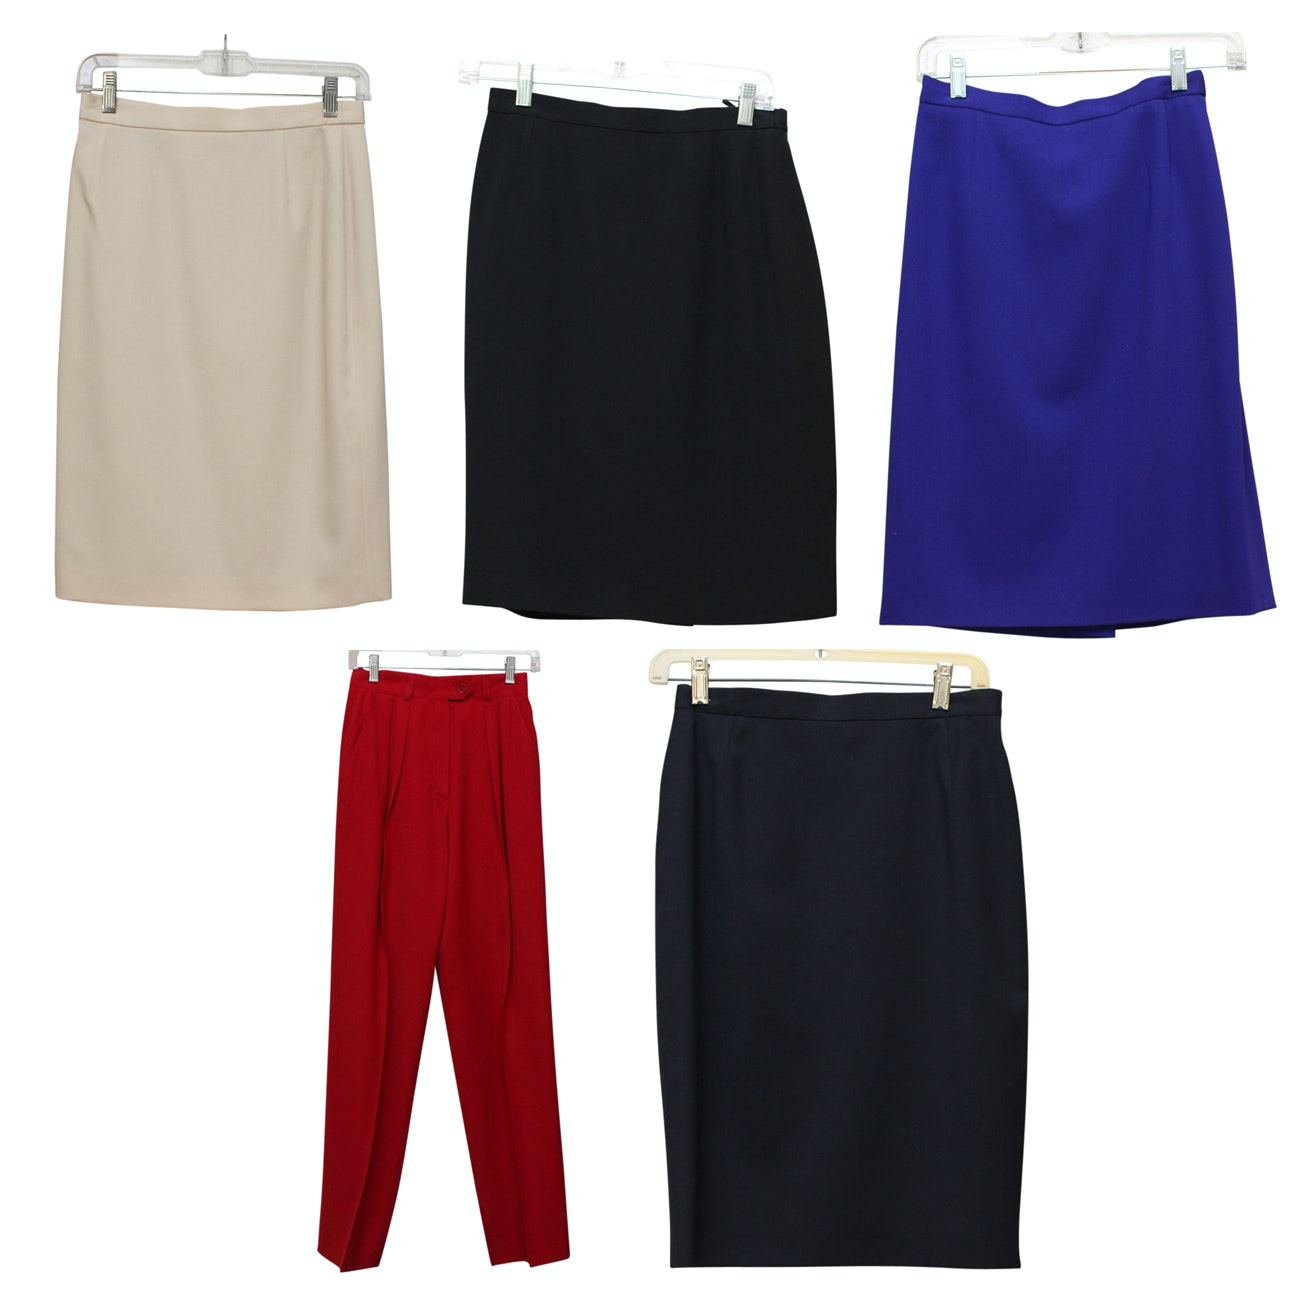 Escada Red Slacks and Three Wool Skirts in Various Colors